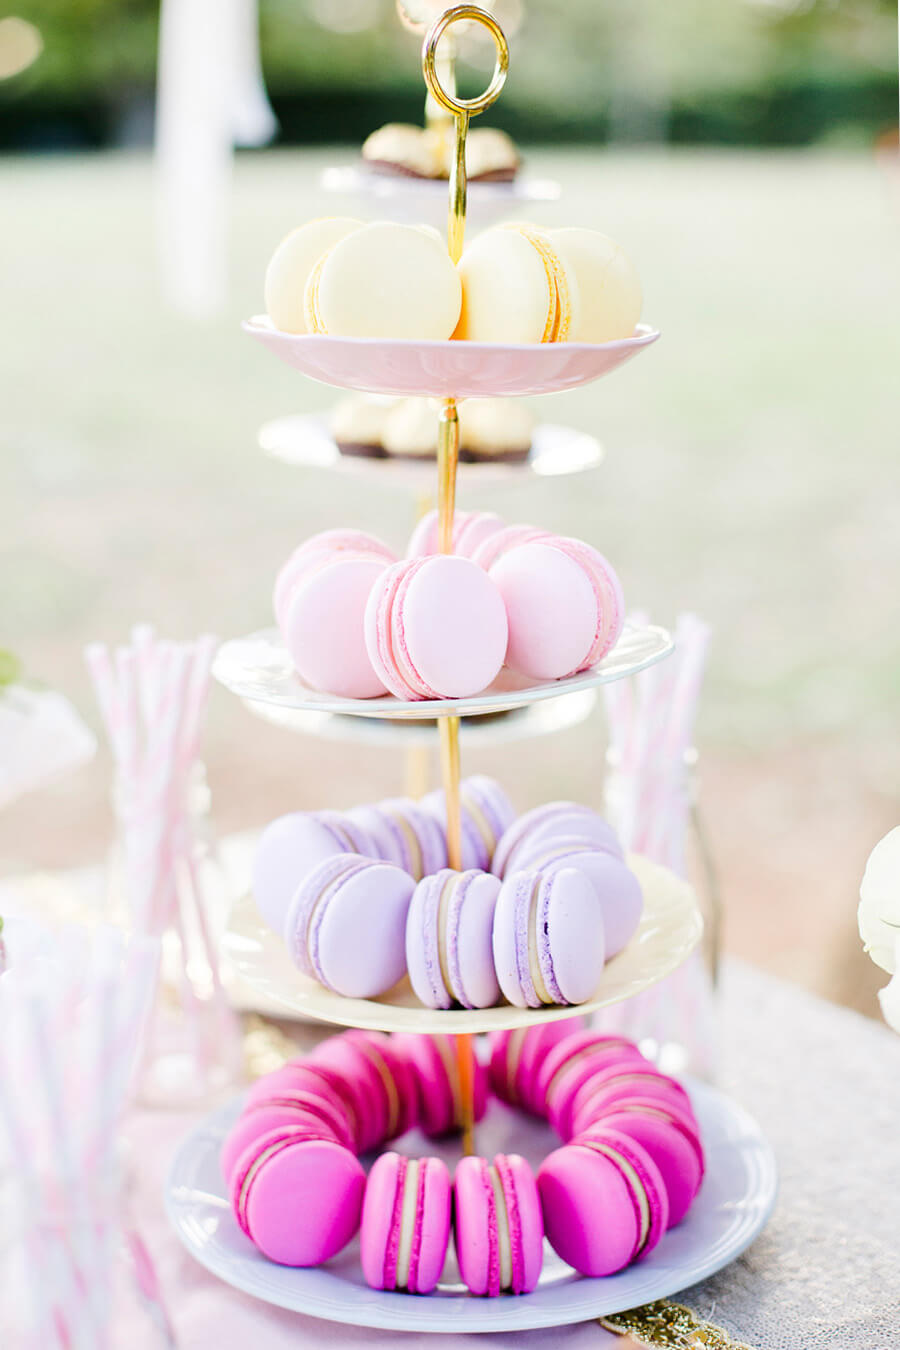 Dainty Tiered Plate with Macaroons Table Decor